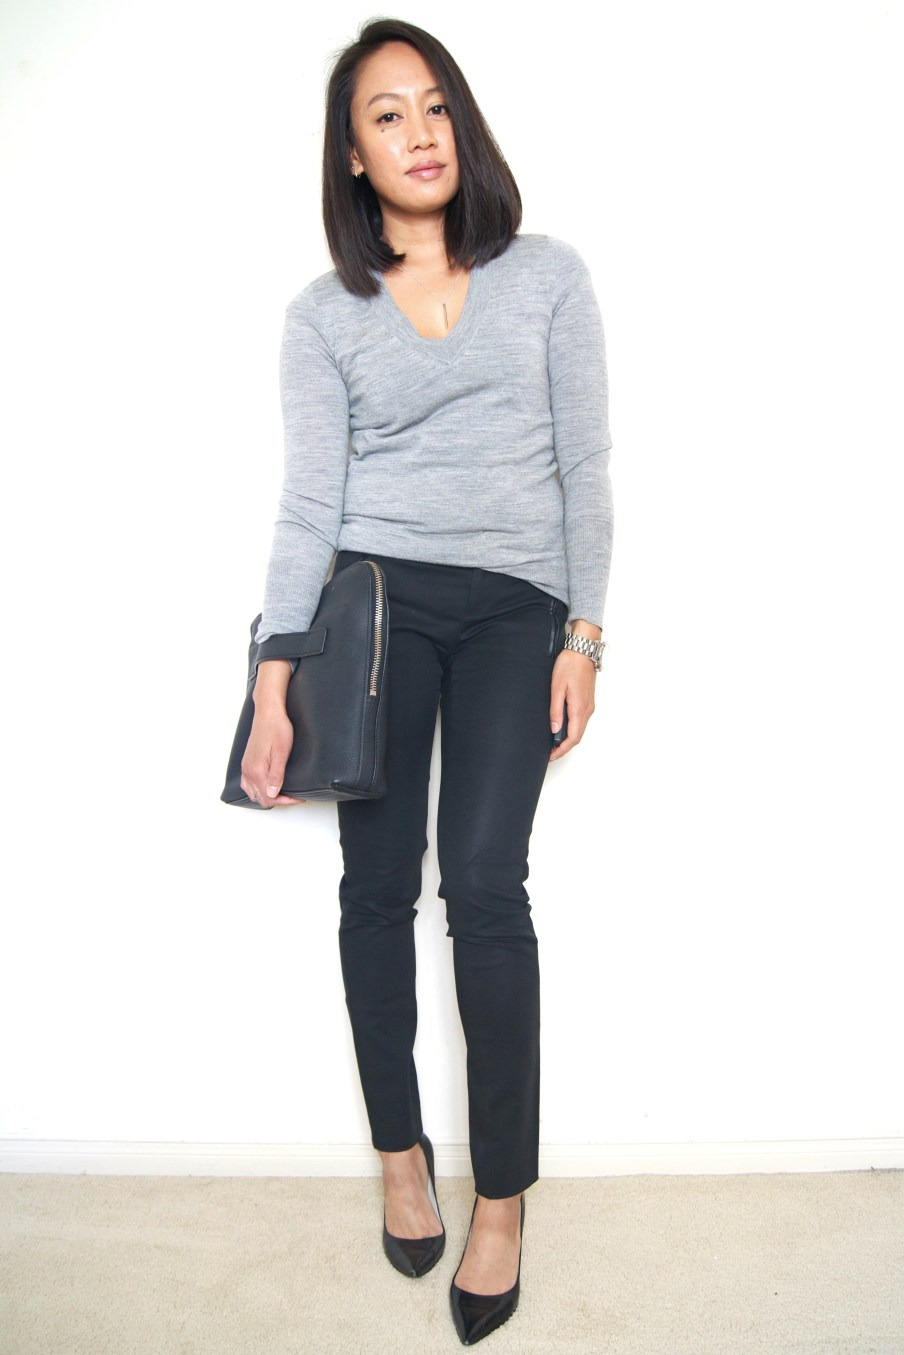 Gray sweater + skinny black pants